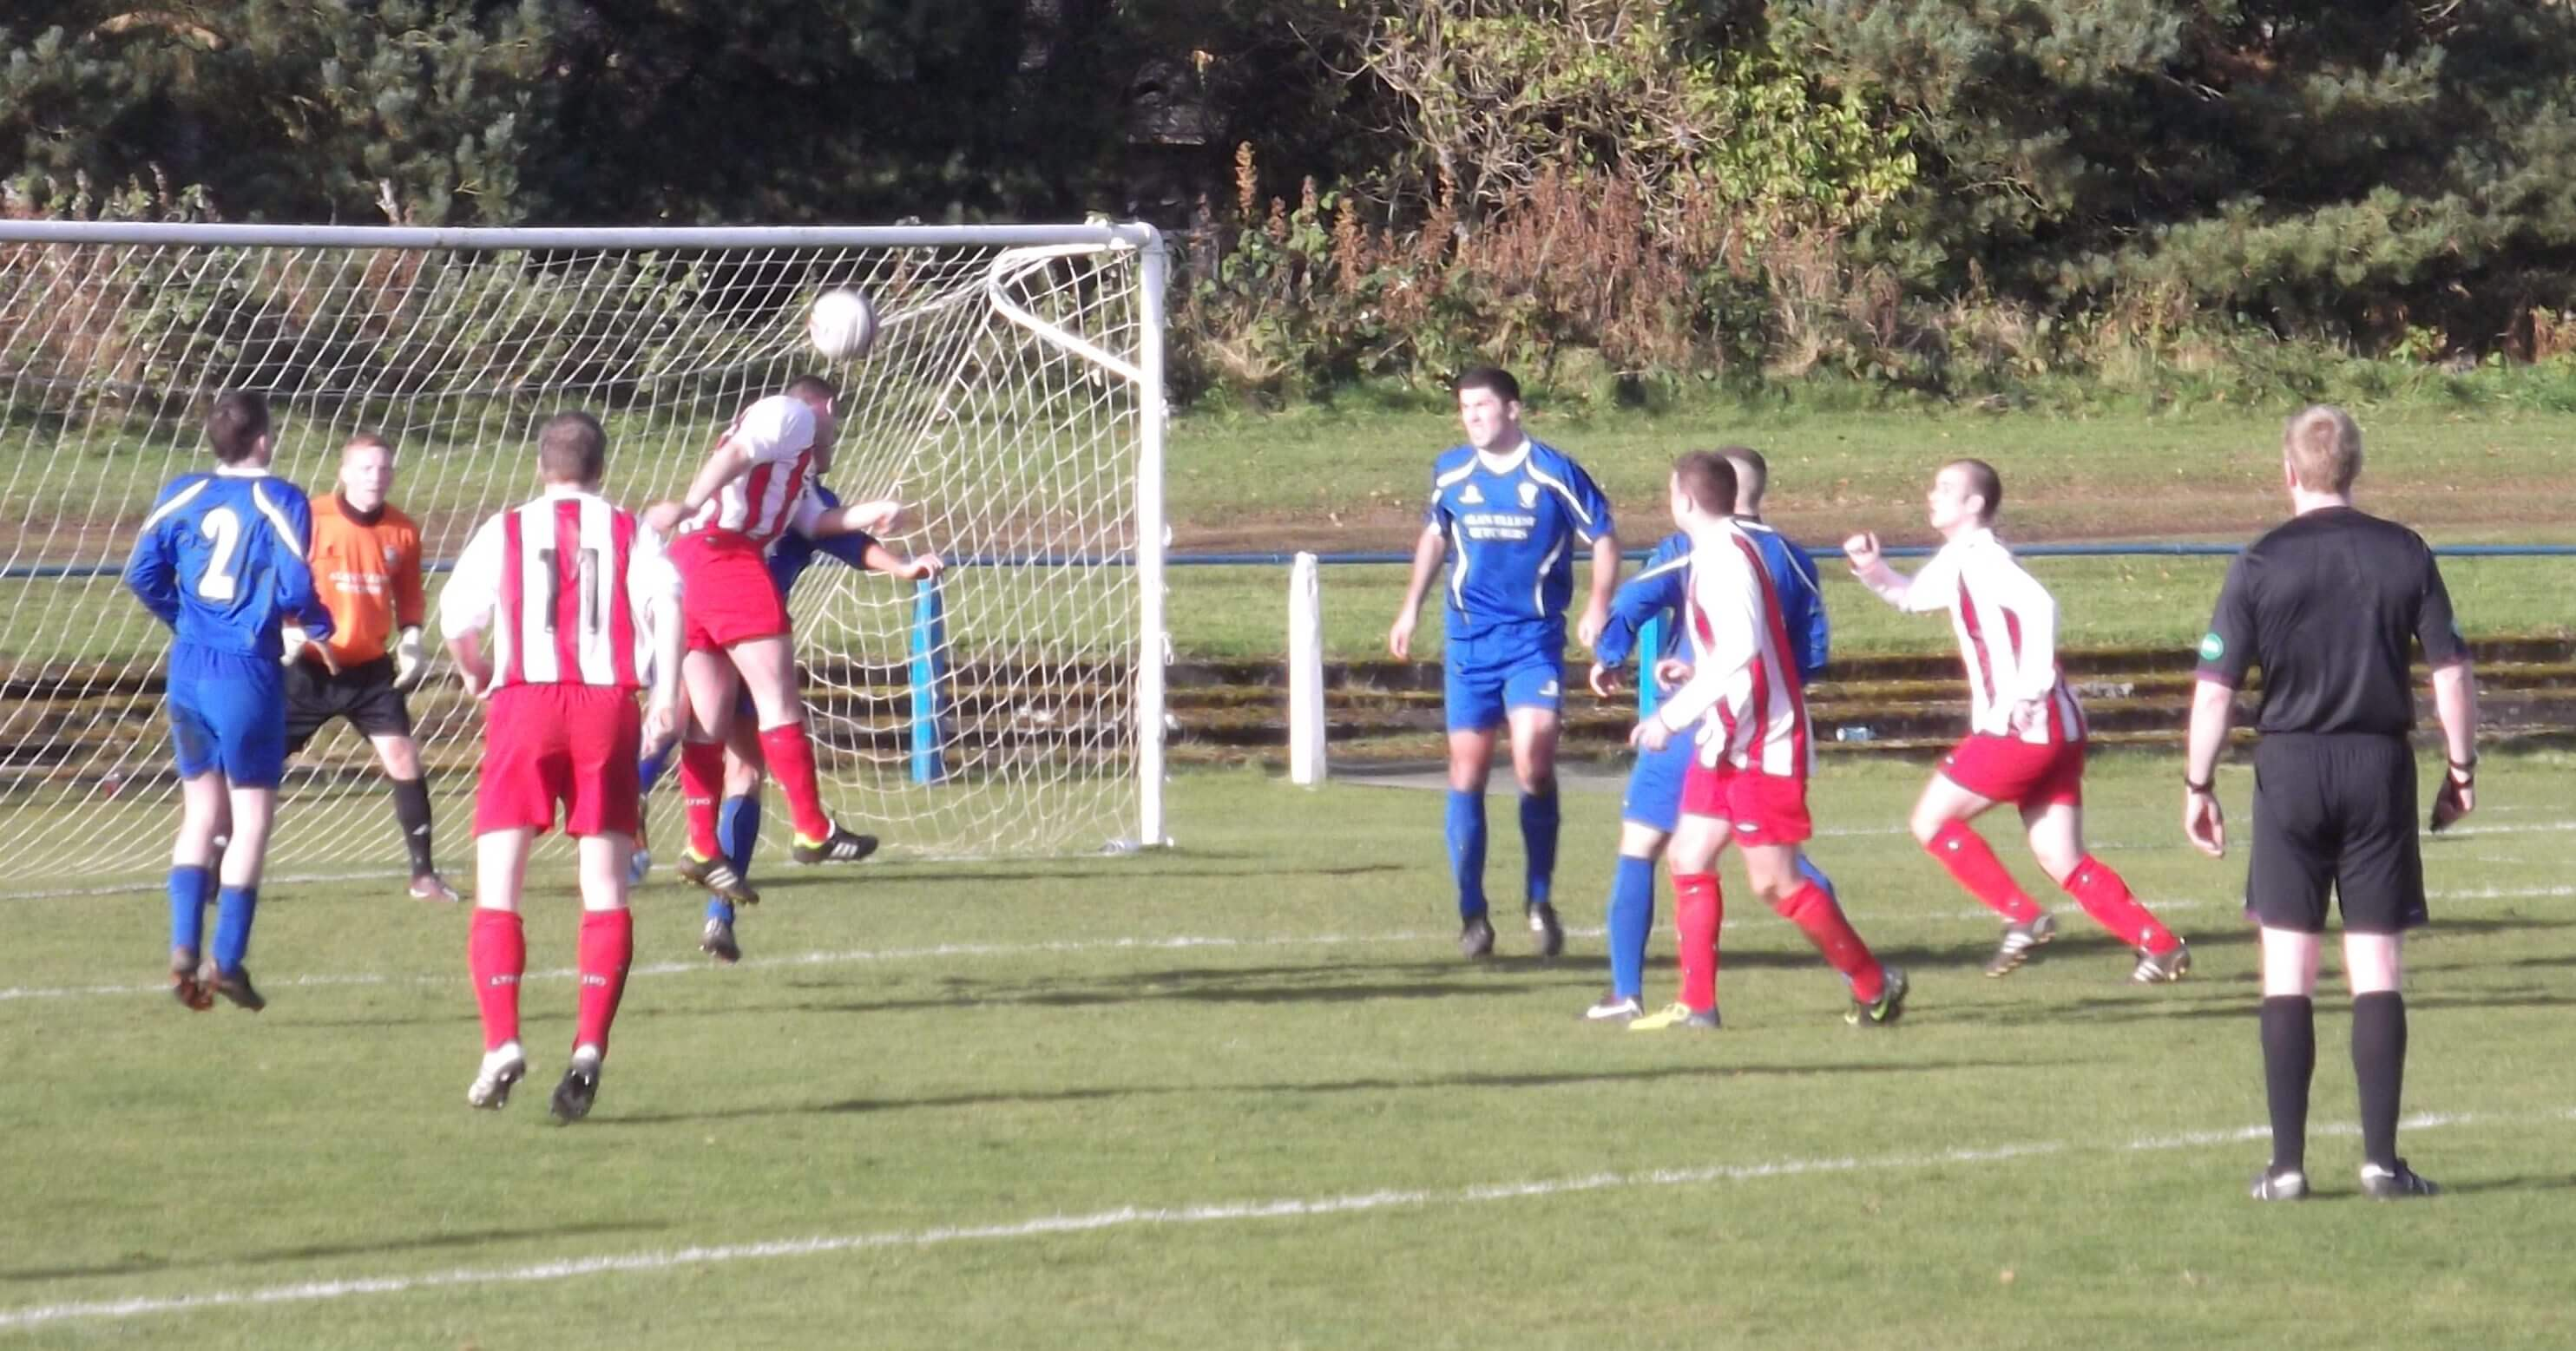 Larkhall Thistle go close with a header in the first half